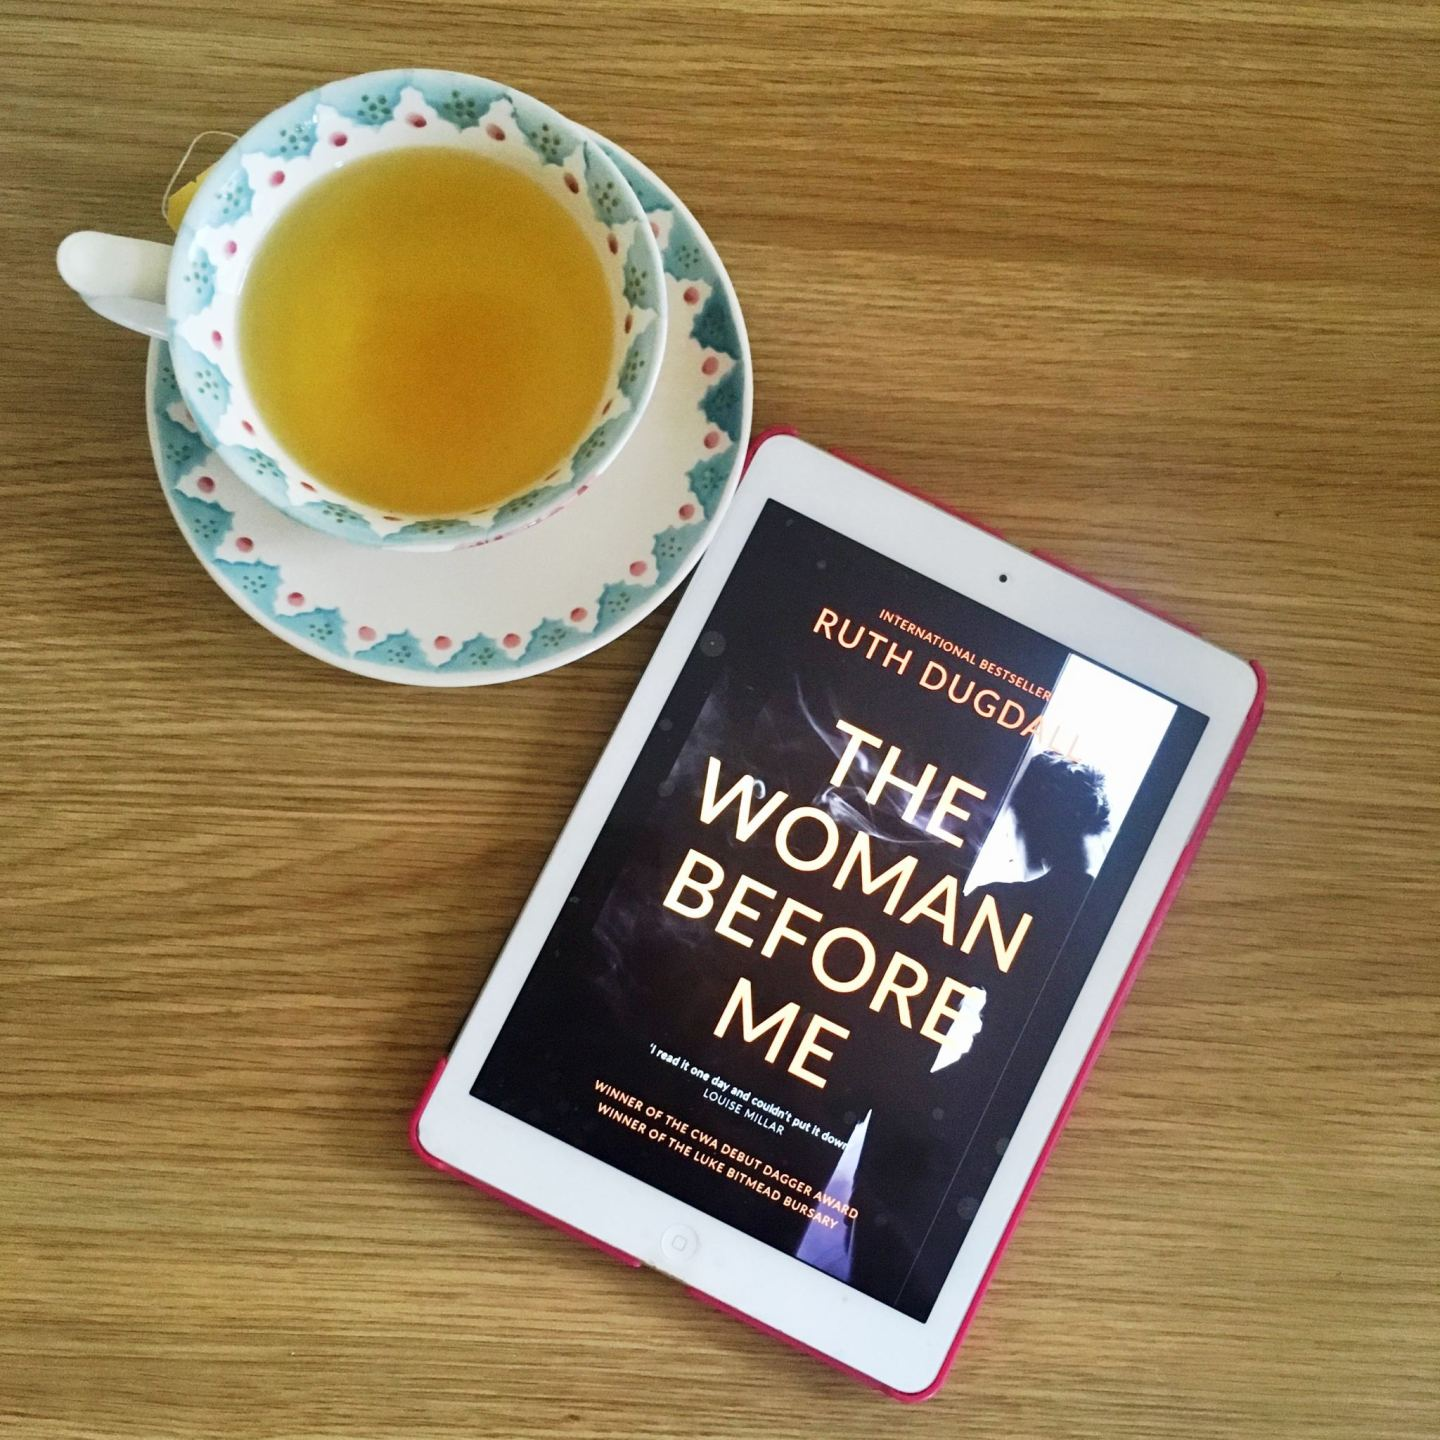 Blog Tour: The Woman Before Me